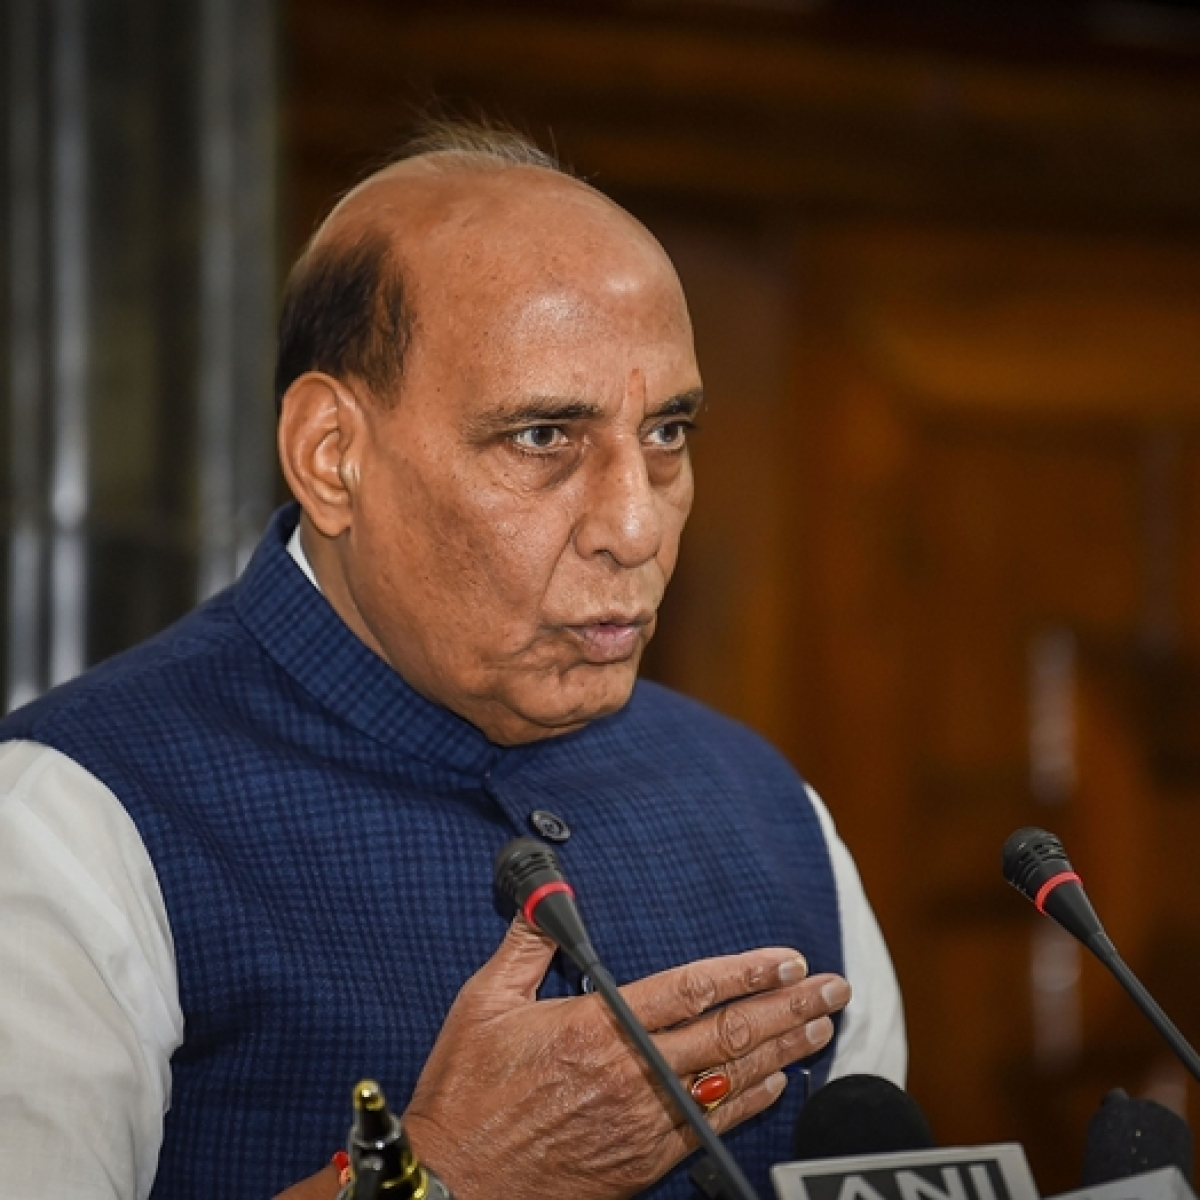 India's armed forces will not hesitate to cross border to protect country: Rajnath Singh